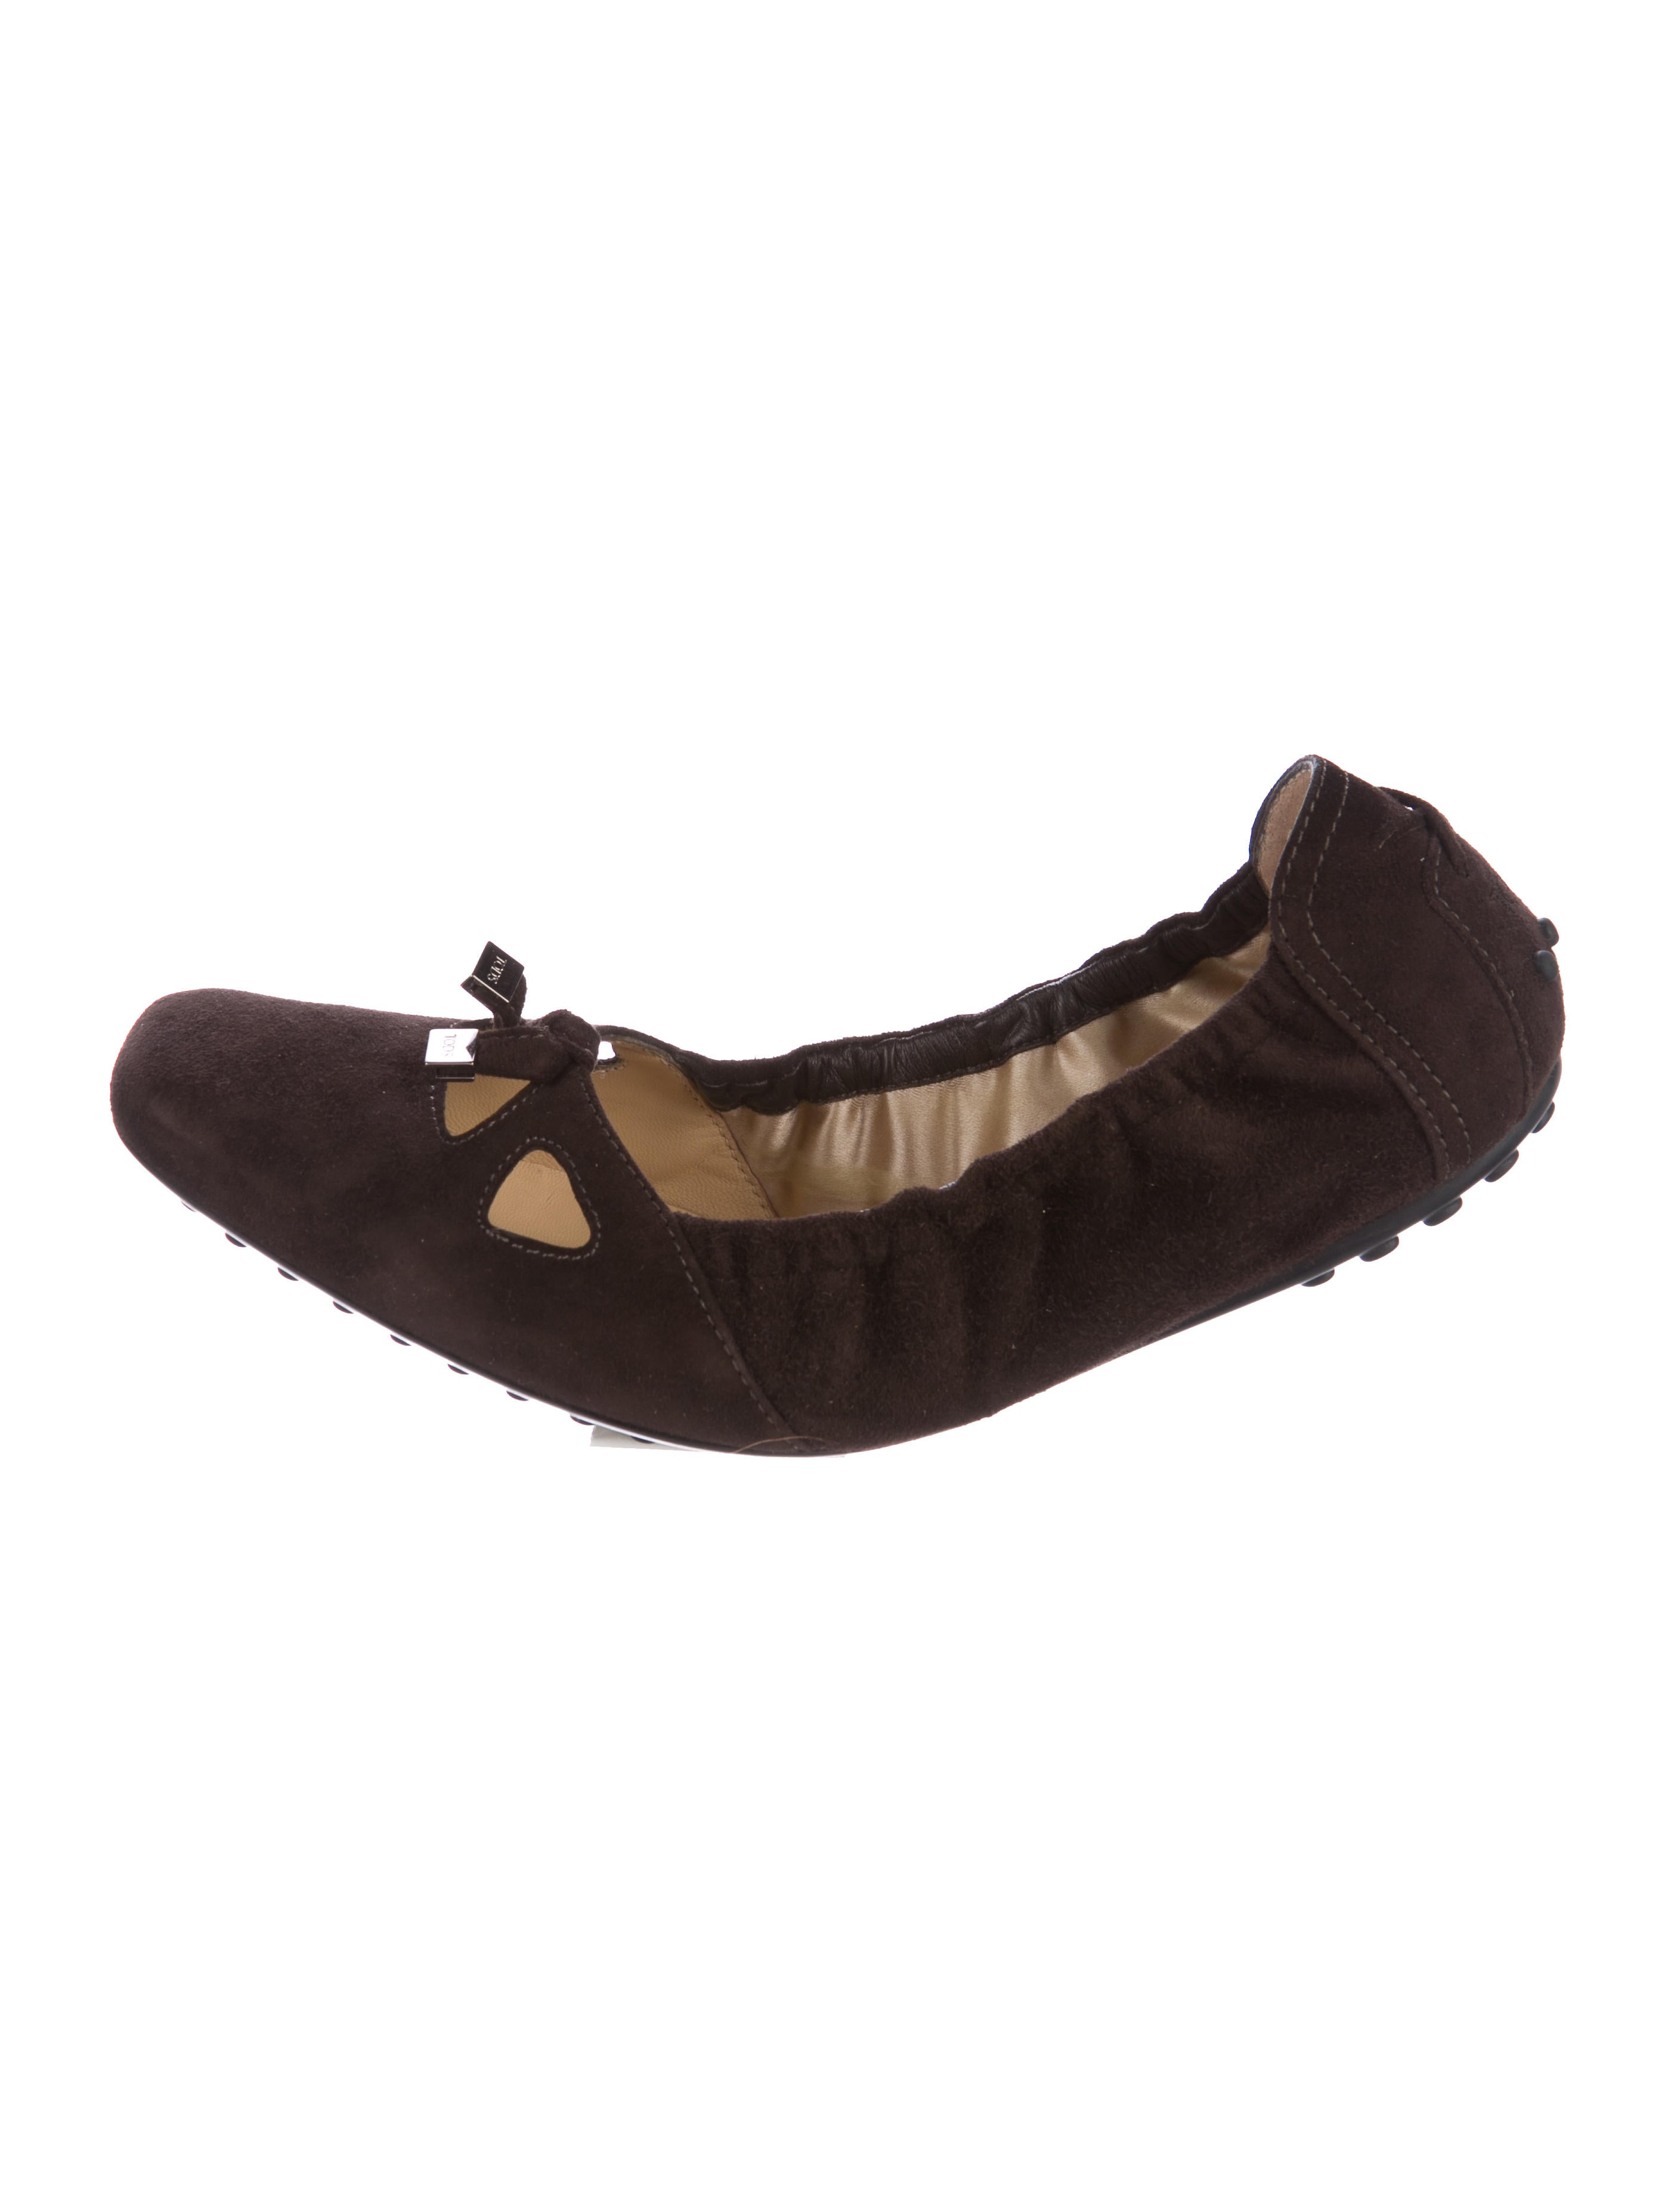 Tod's Suede Square-Toe Flats fashionable cheap price YHJlWIP